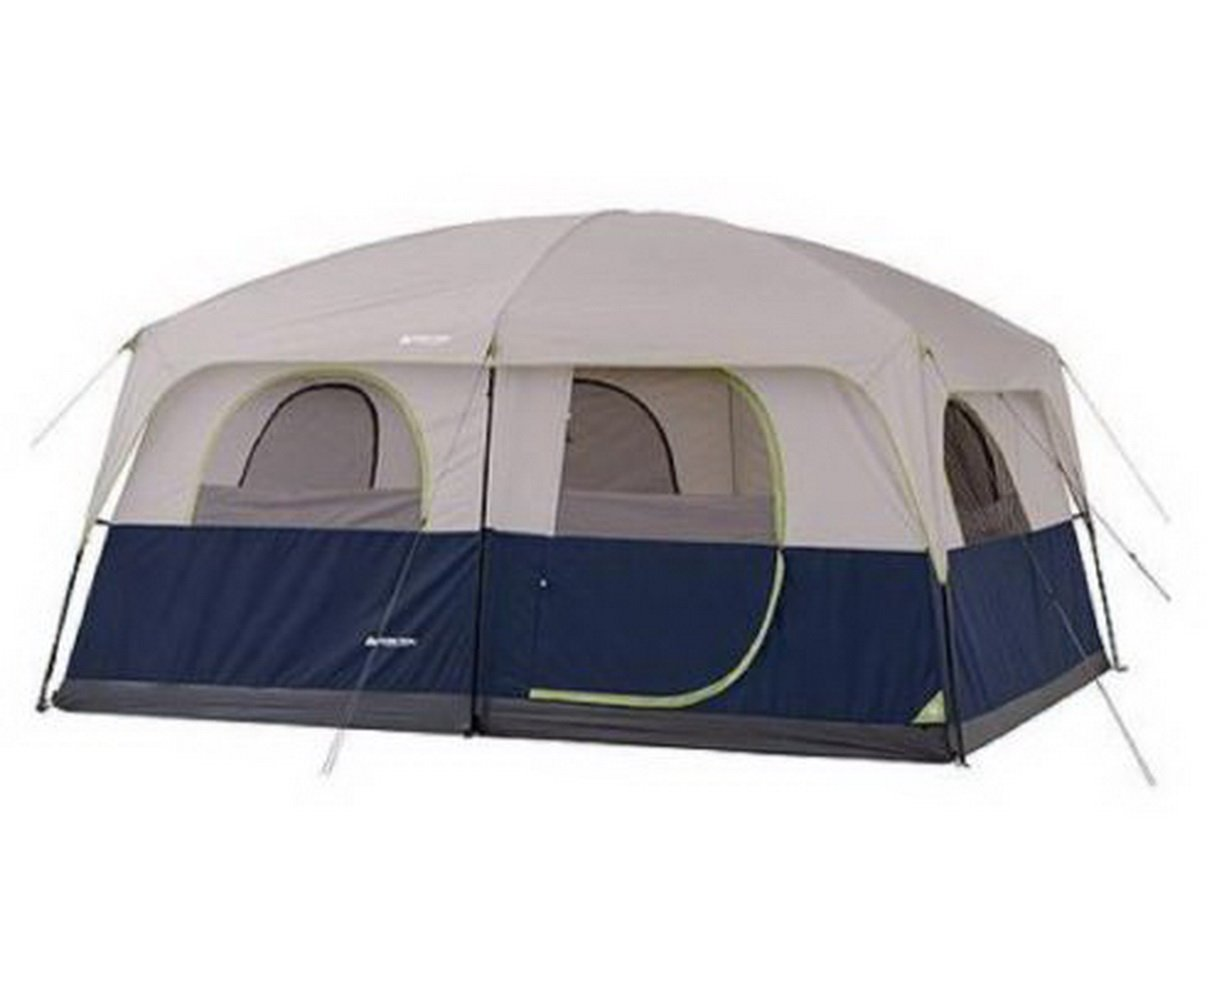 10 Person Tent 2 Rooms Instant Outdoor Family Trail Hunting Camping Cabin Wall by OZARK   B00VIEESY6